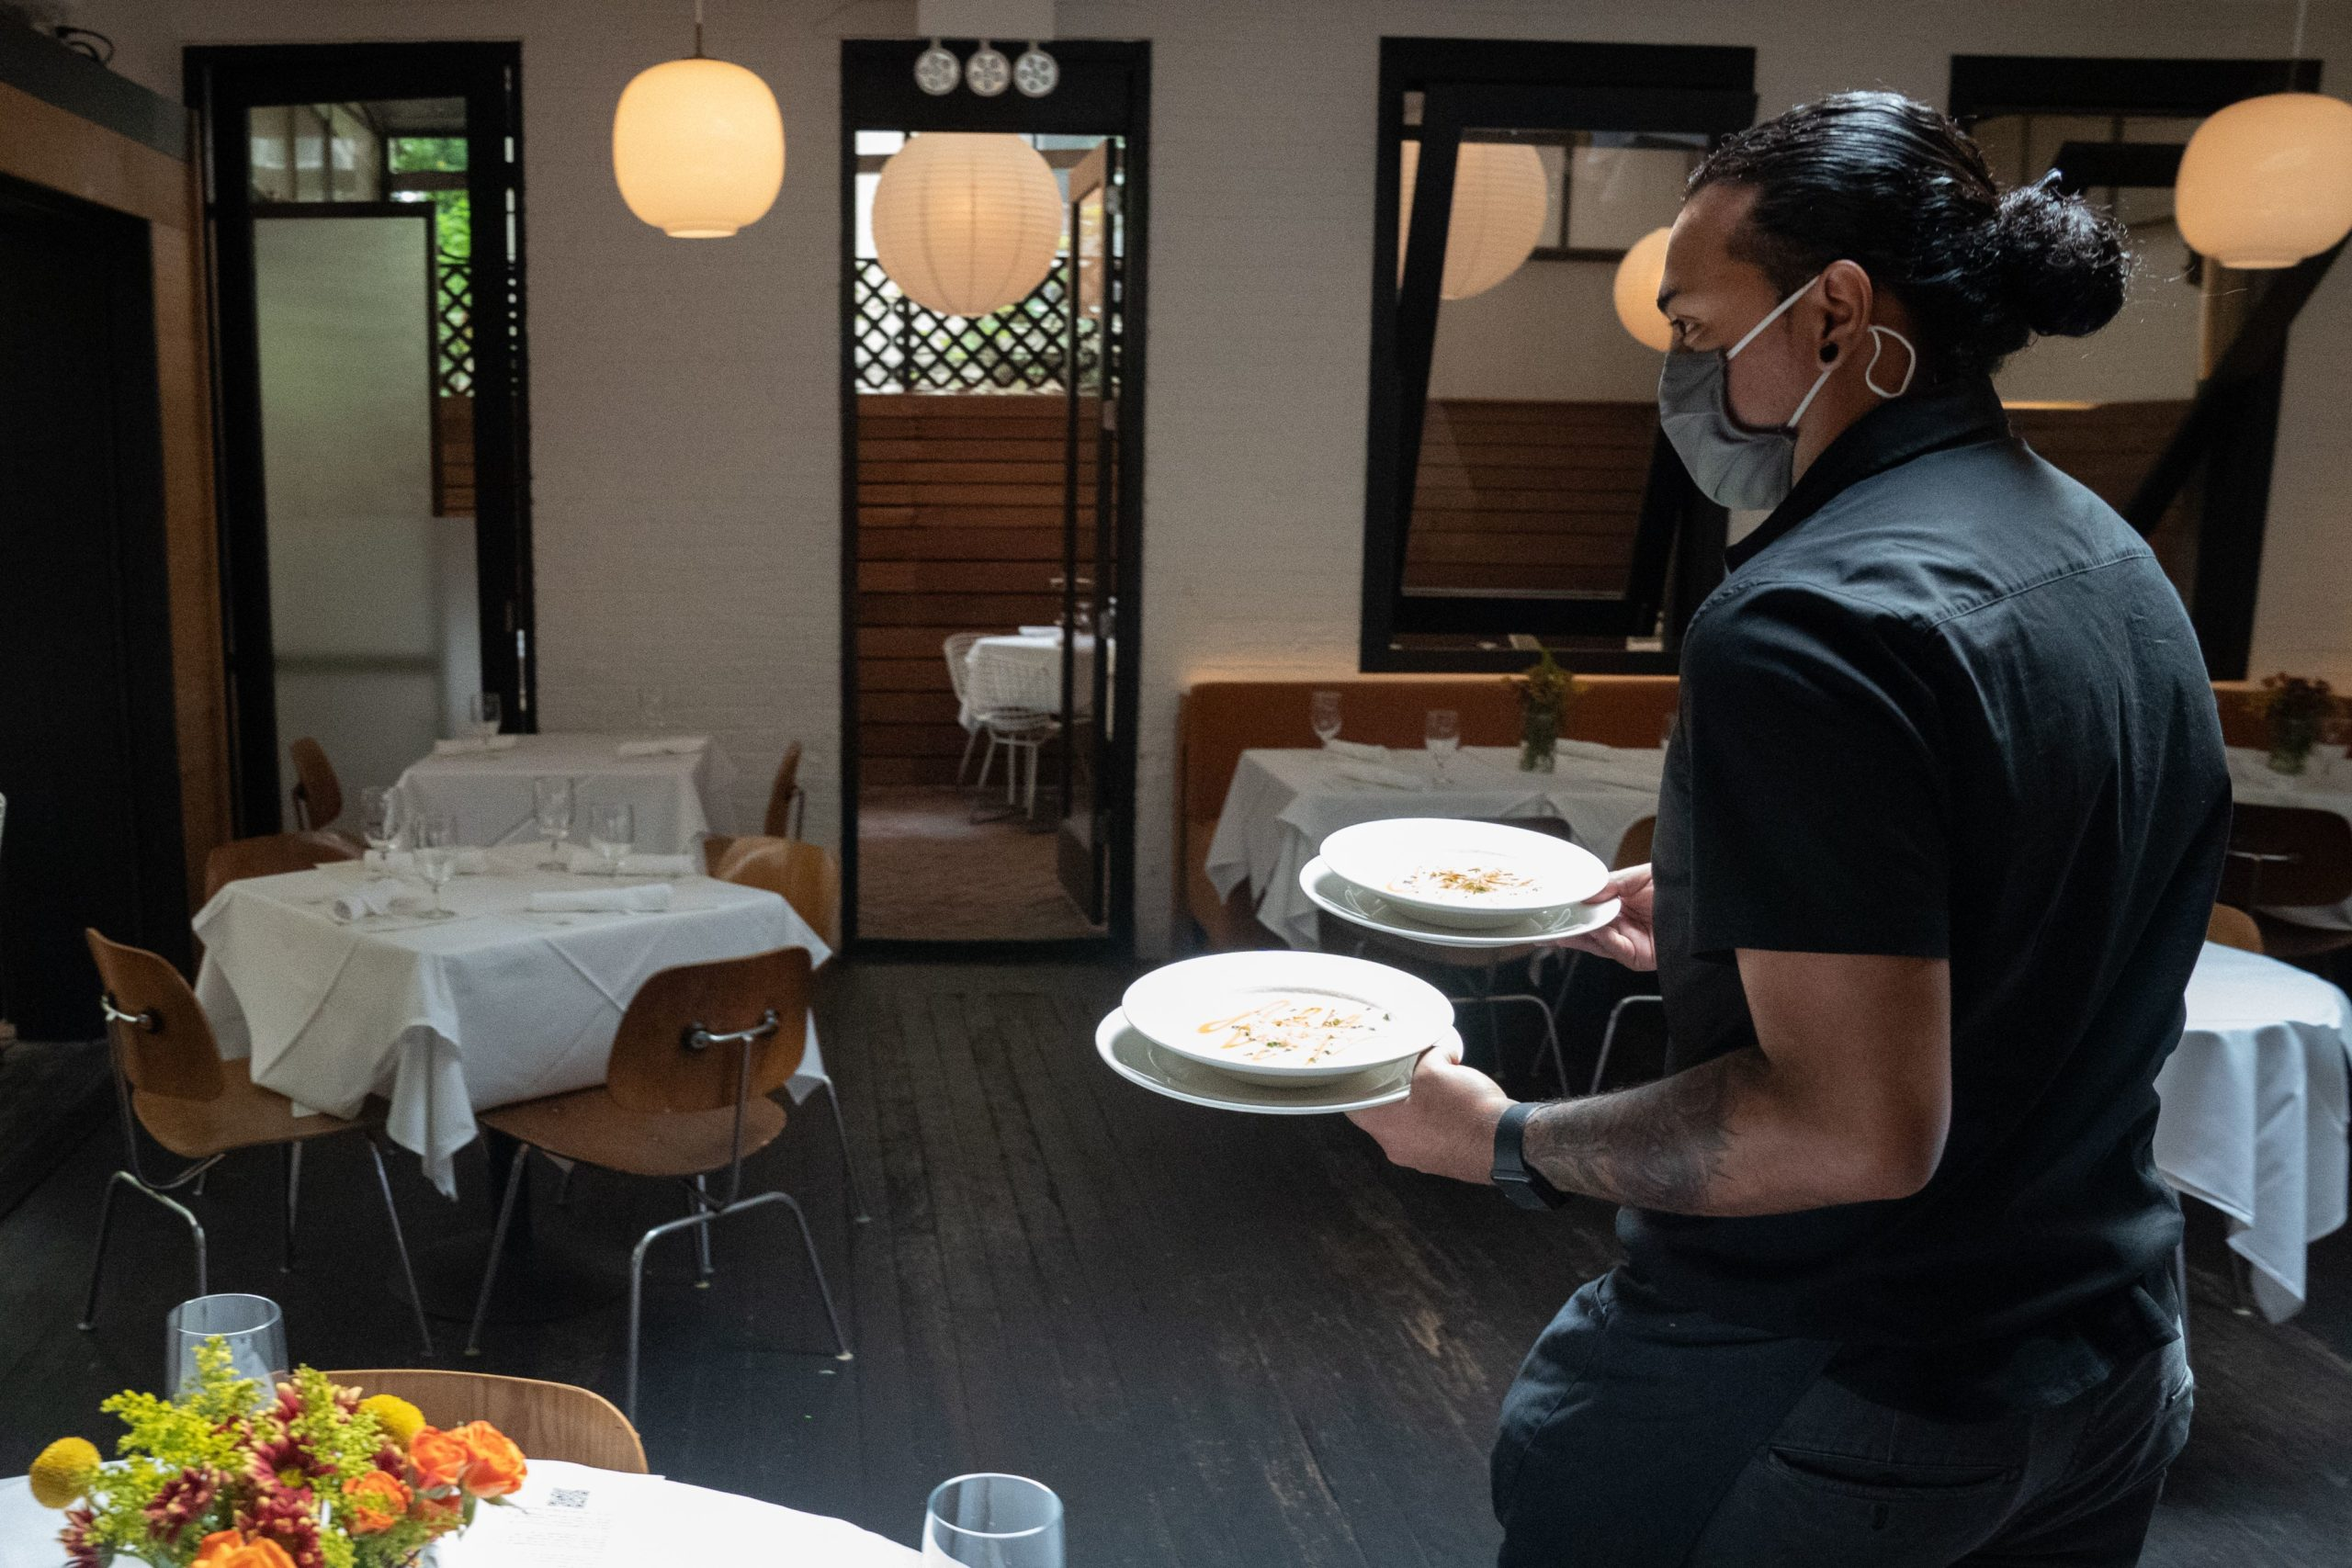 A waiter delivers food to a table at Bottino Restaurant in Chelsea as New York City restaurants open for limited capacity indoor dining on October 1, 2020 in New York. (Photo by Bryan R. Smith / AFP) (Photo by BRYAN R. SMITH/AFP via Getty Images)